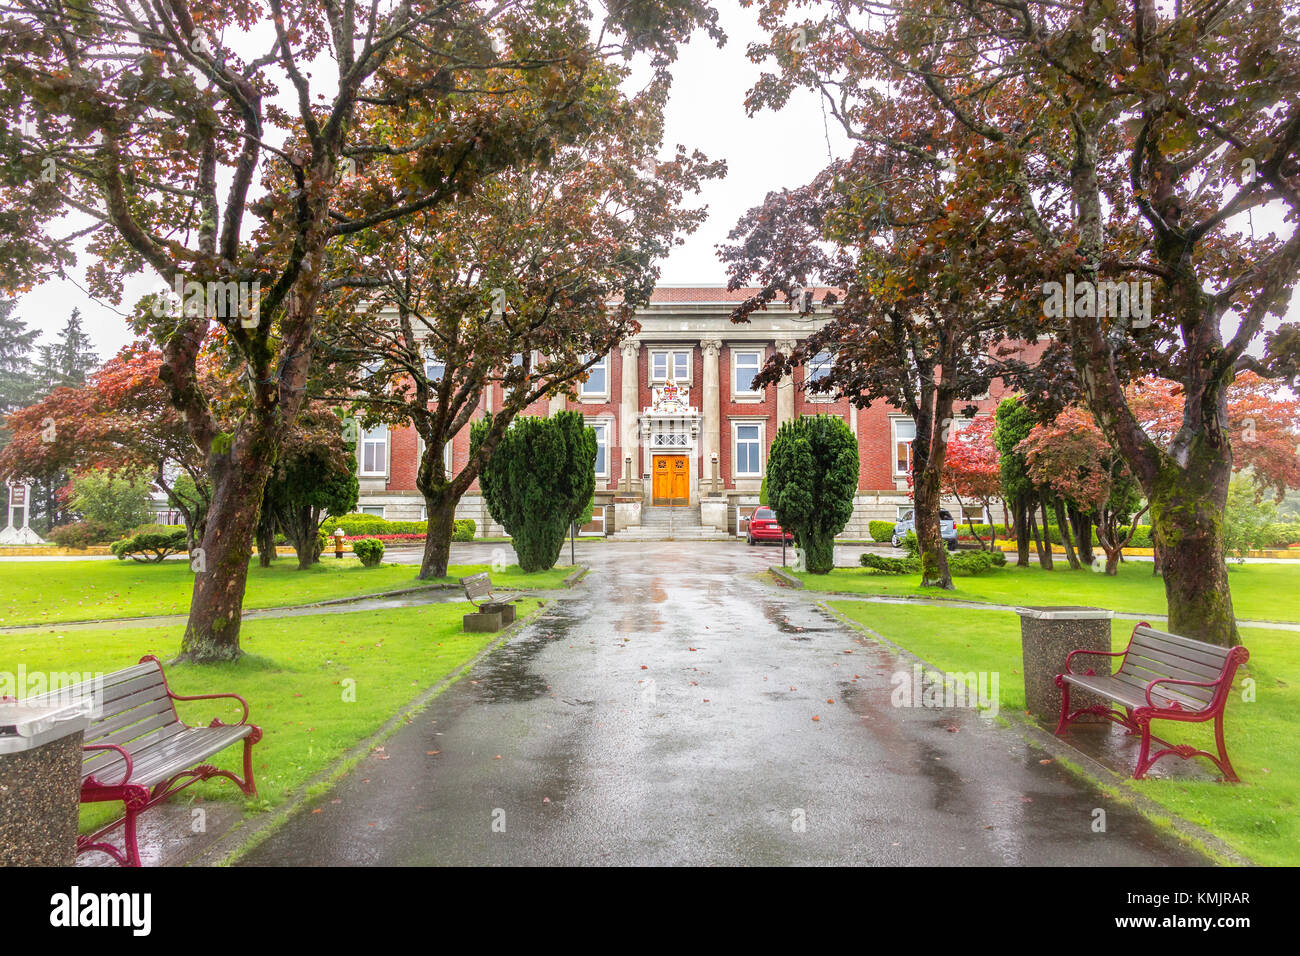 Prince Rupert, British Columbia, Canada - August 23th, 2017: The Crown Counsel building, courthouse of Prince Rupert - Stock Image